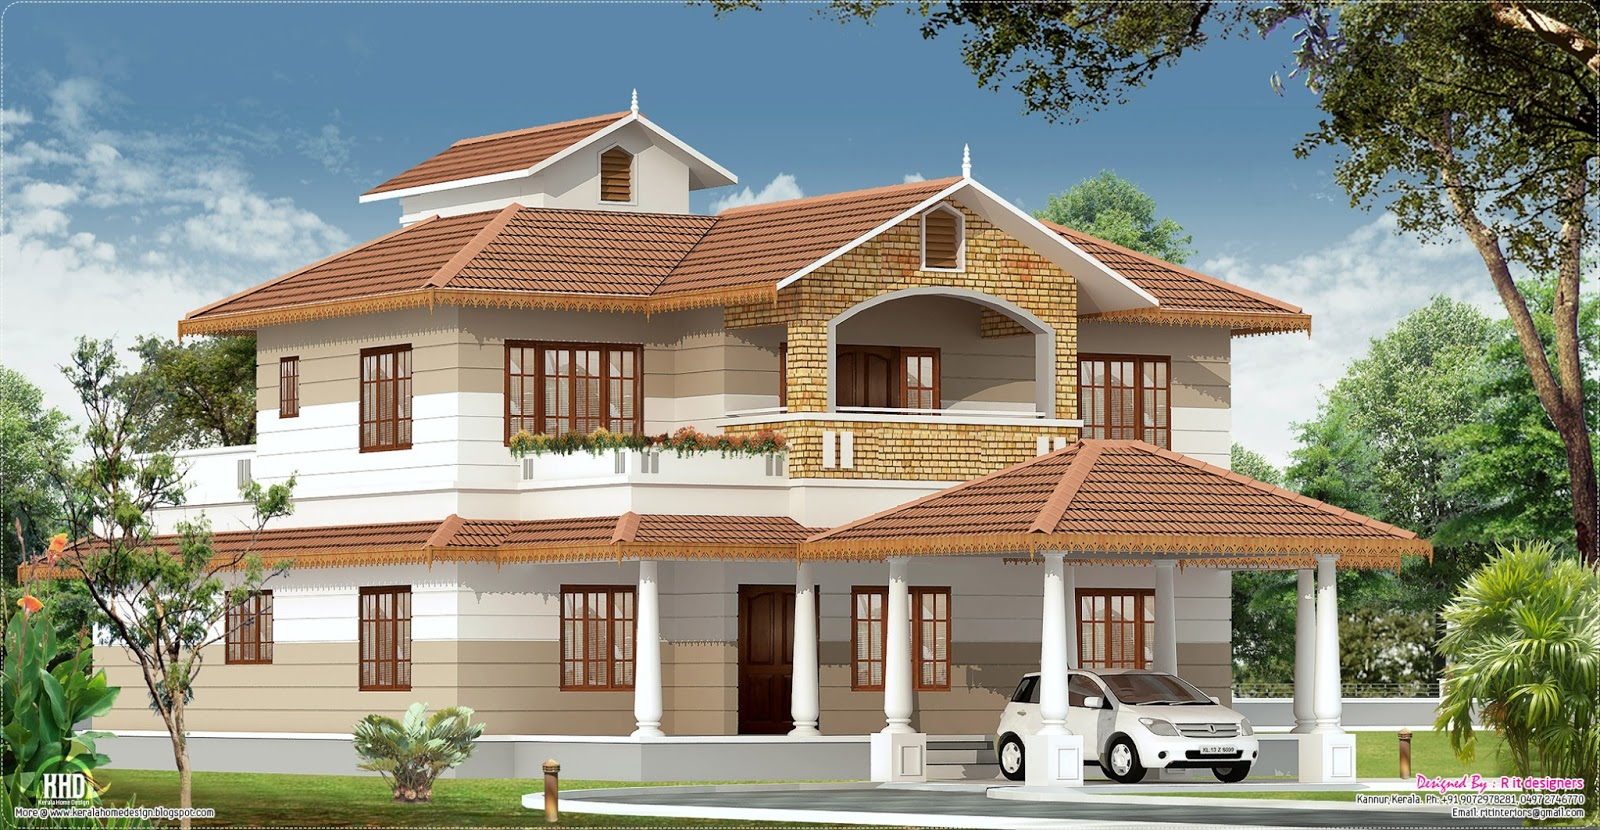 Kerala home with interior designs style house 3d models for Home designs for kerala